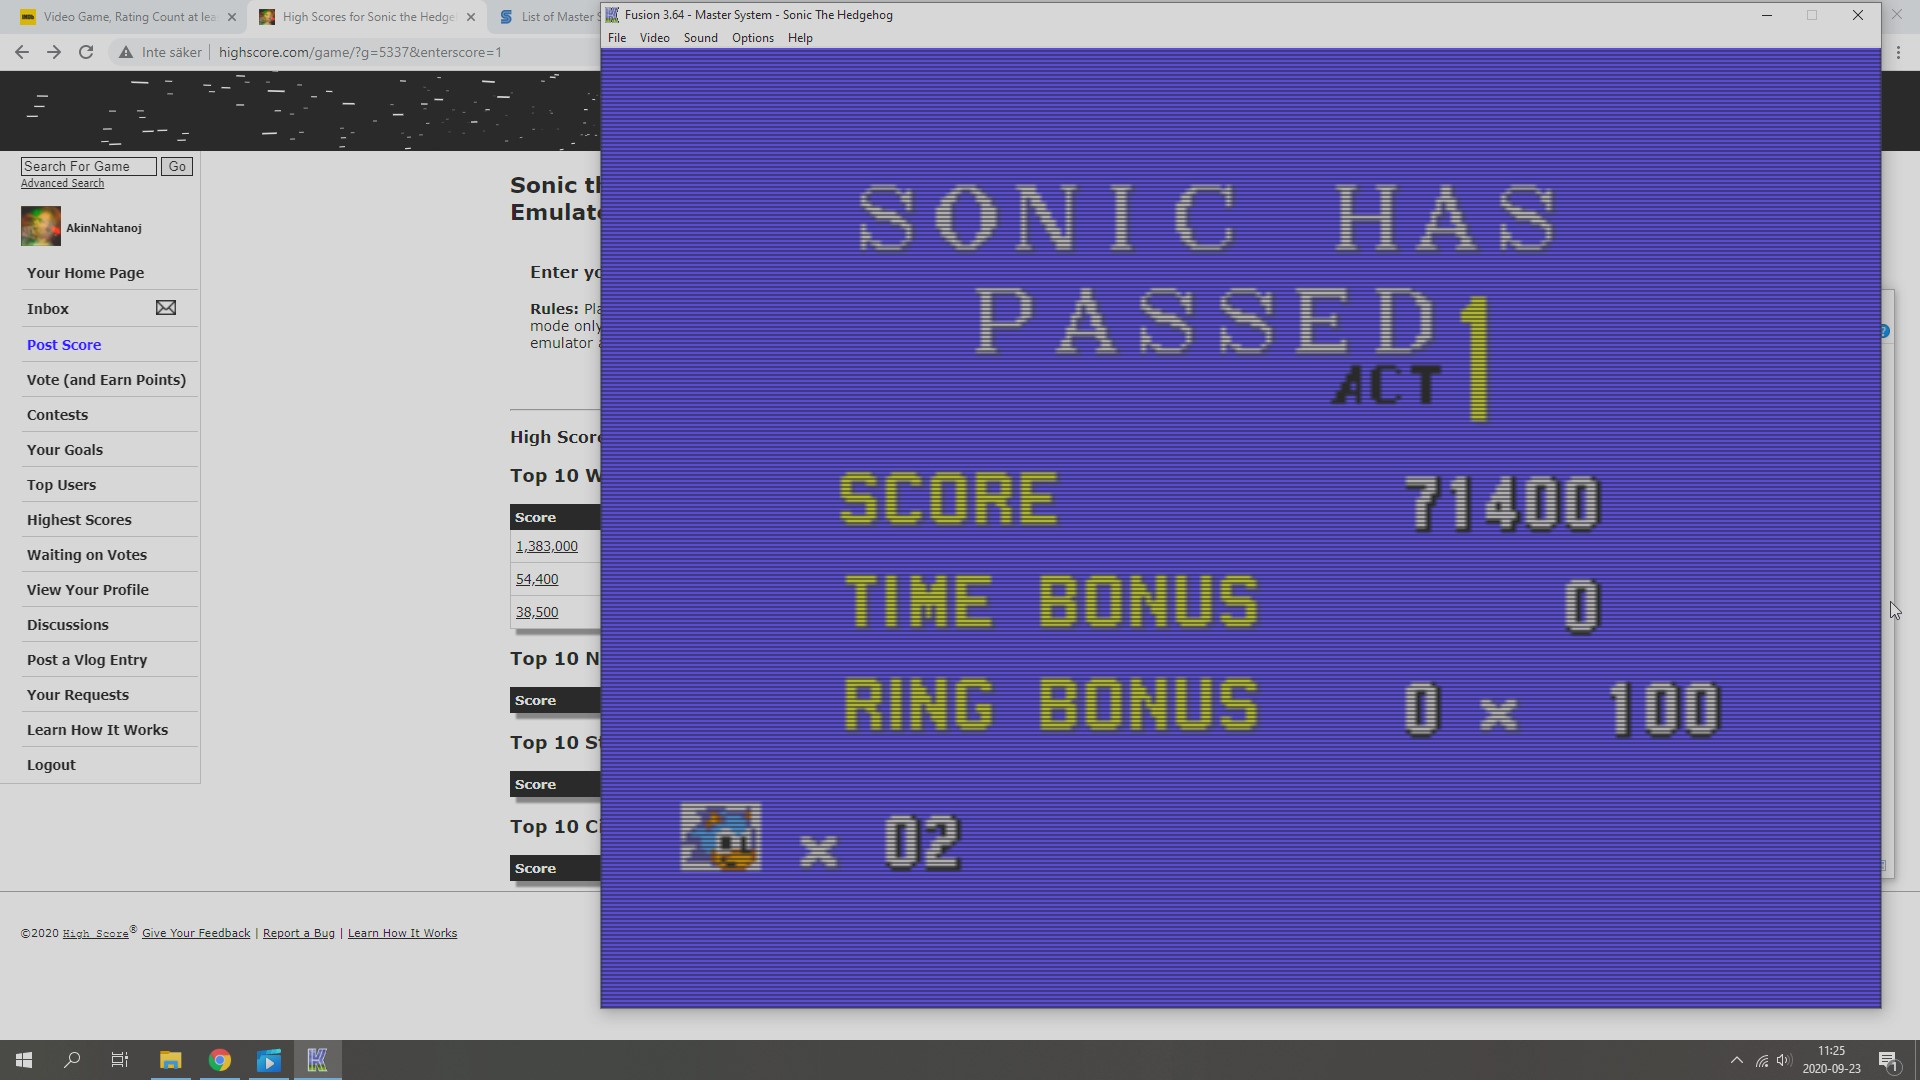 Sonic the Hedgehog 71,400 points